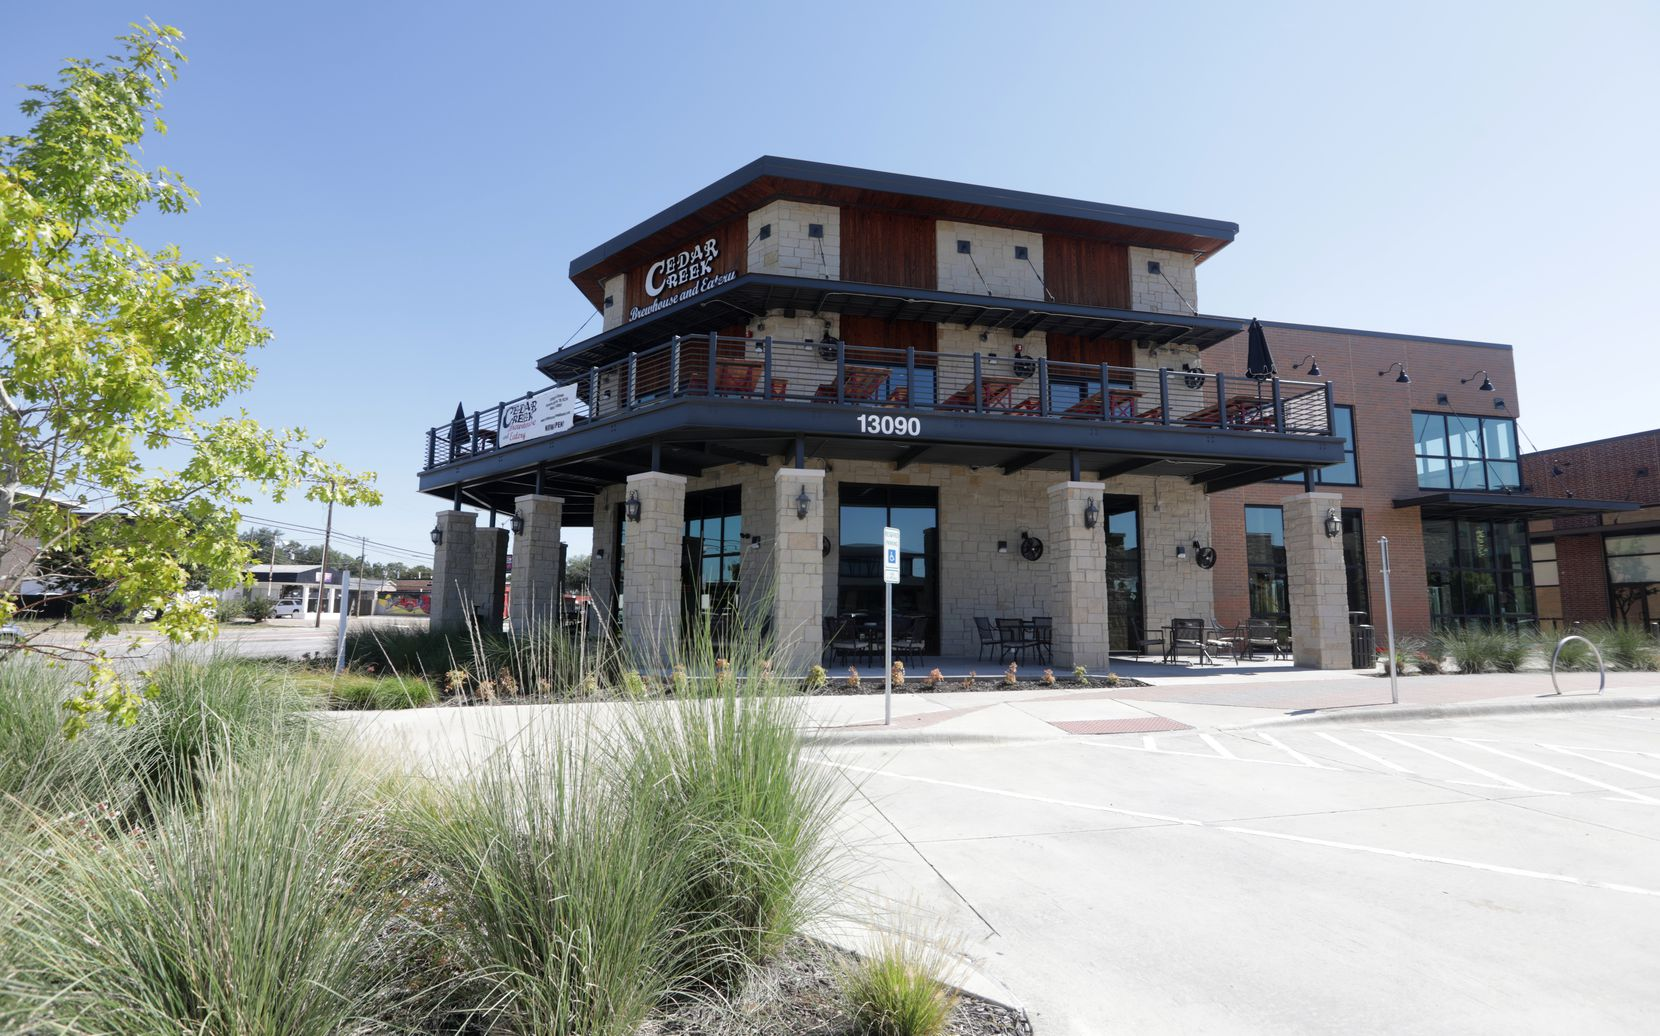 Cedar Creek Brewhouse and Eatery in Farmers Branch